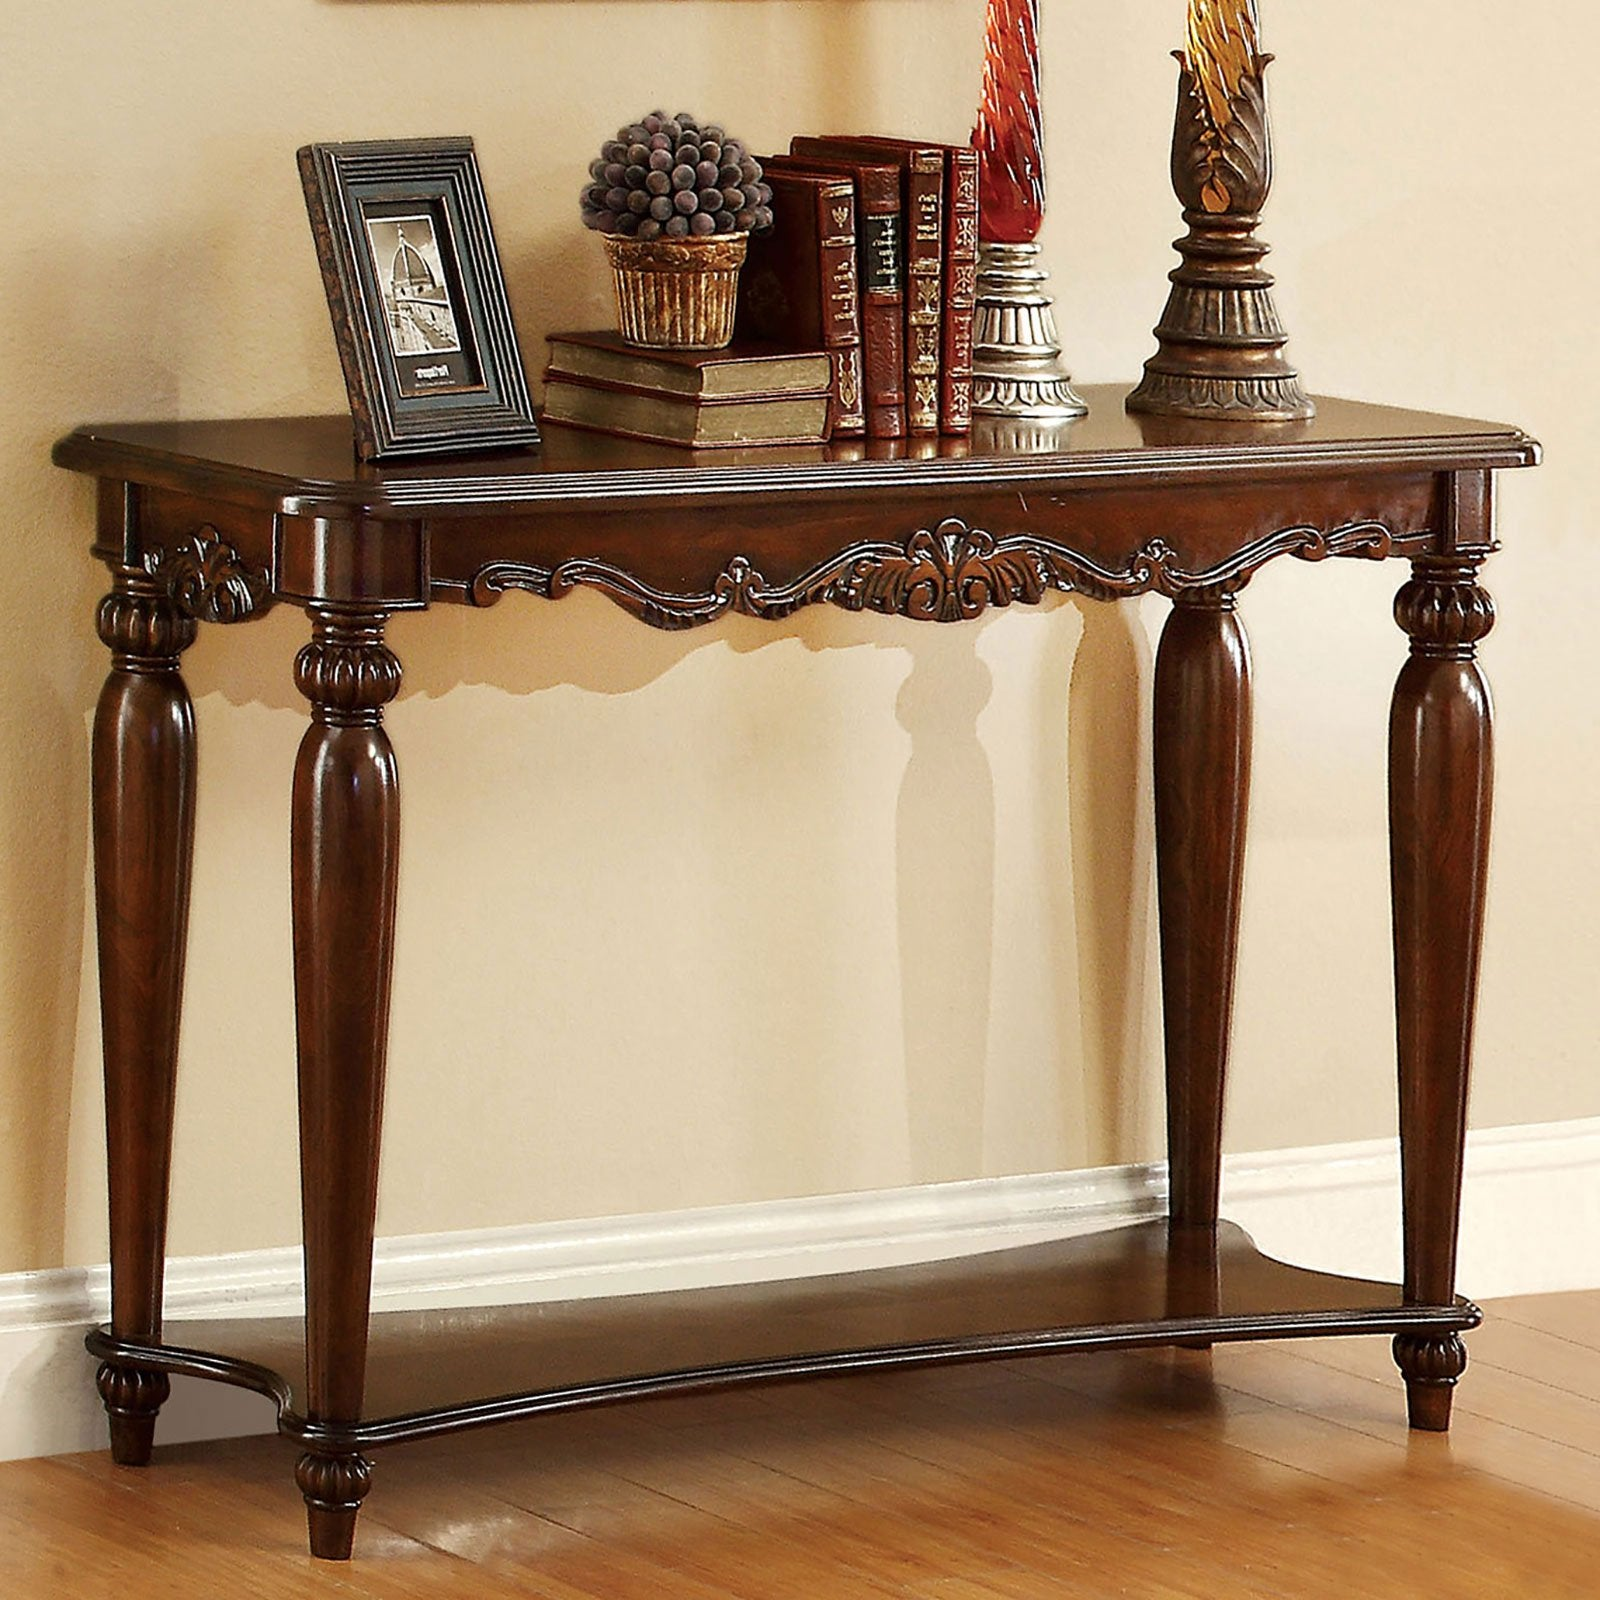 Bunbury Sofa Table - InteriorDesignsToGo.com